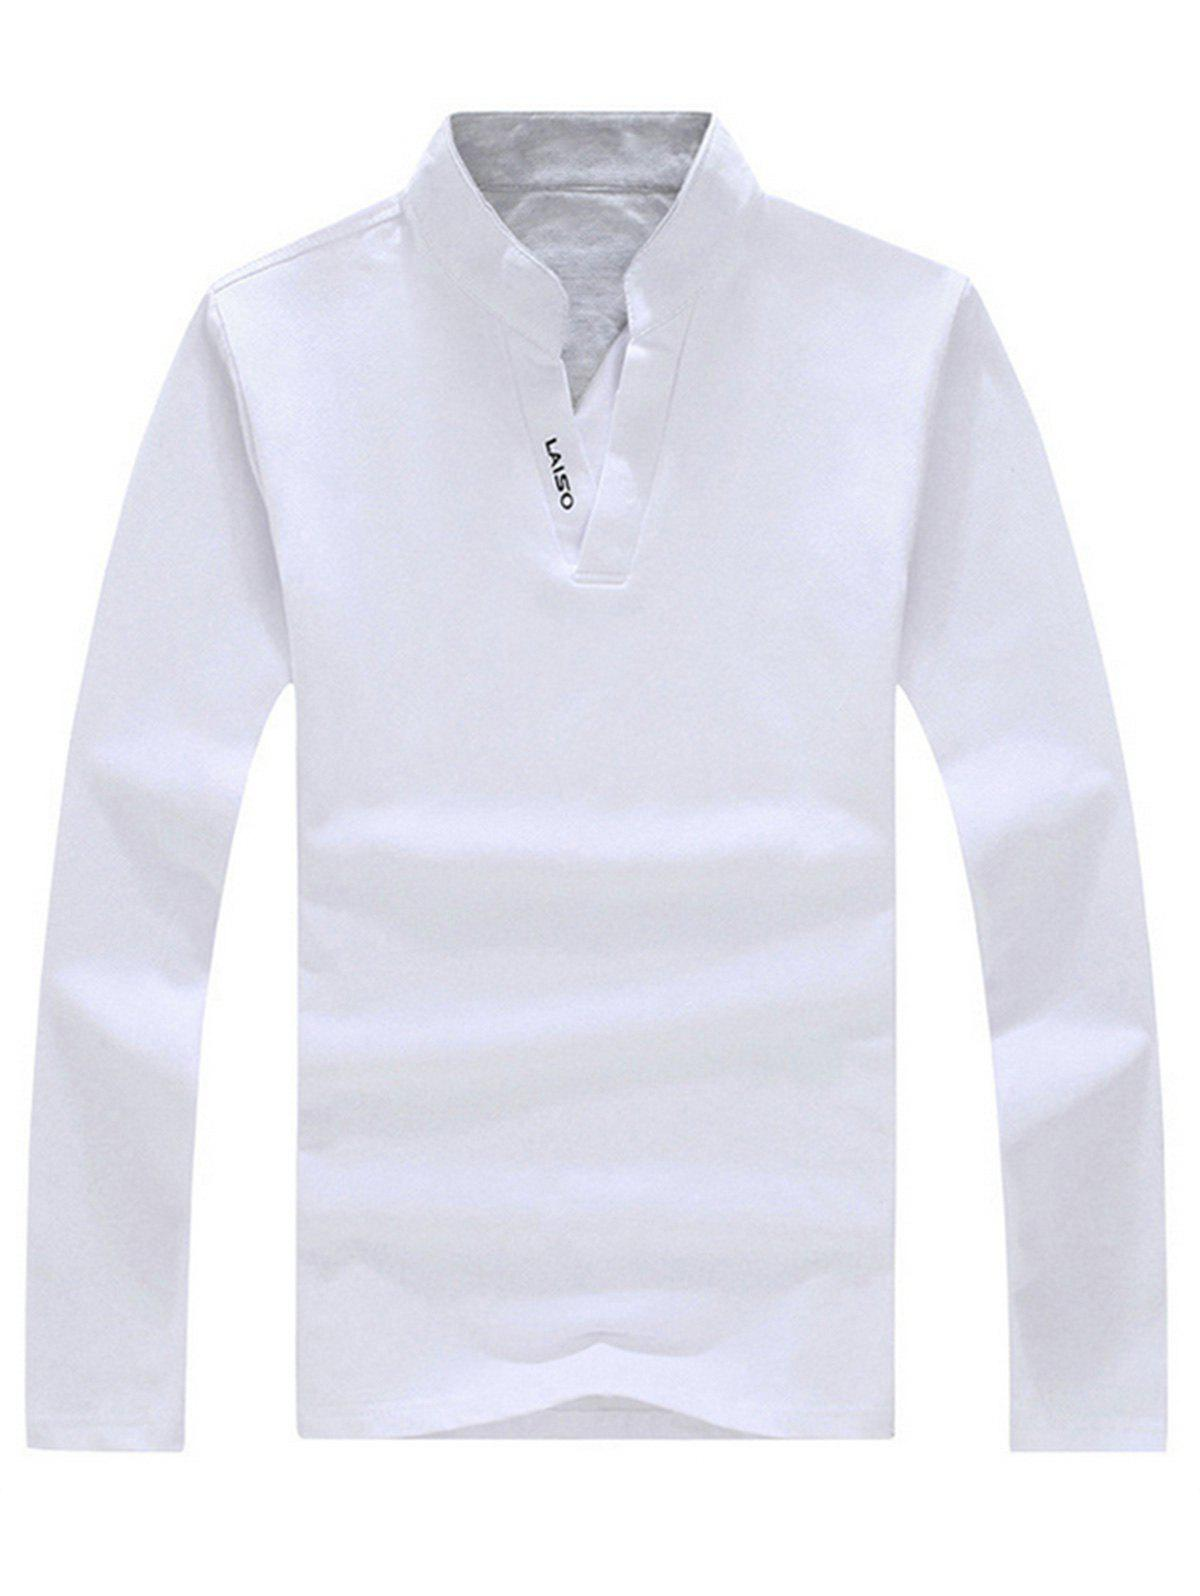 Stand Collar Printed T-shirt - WHITE 3XL